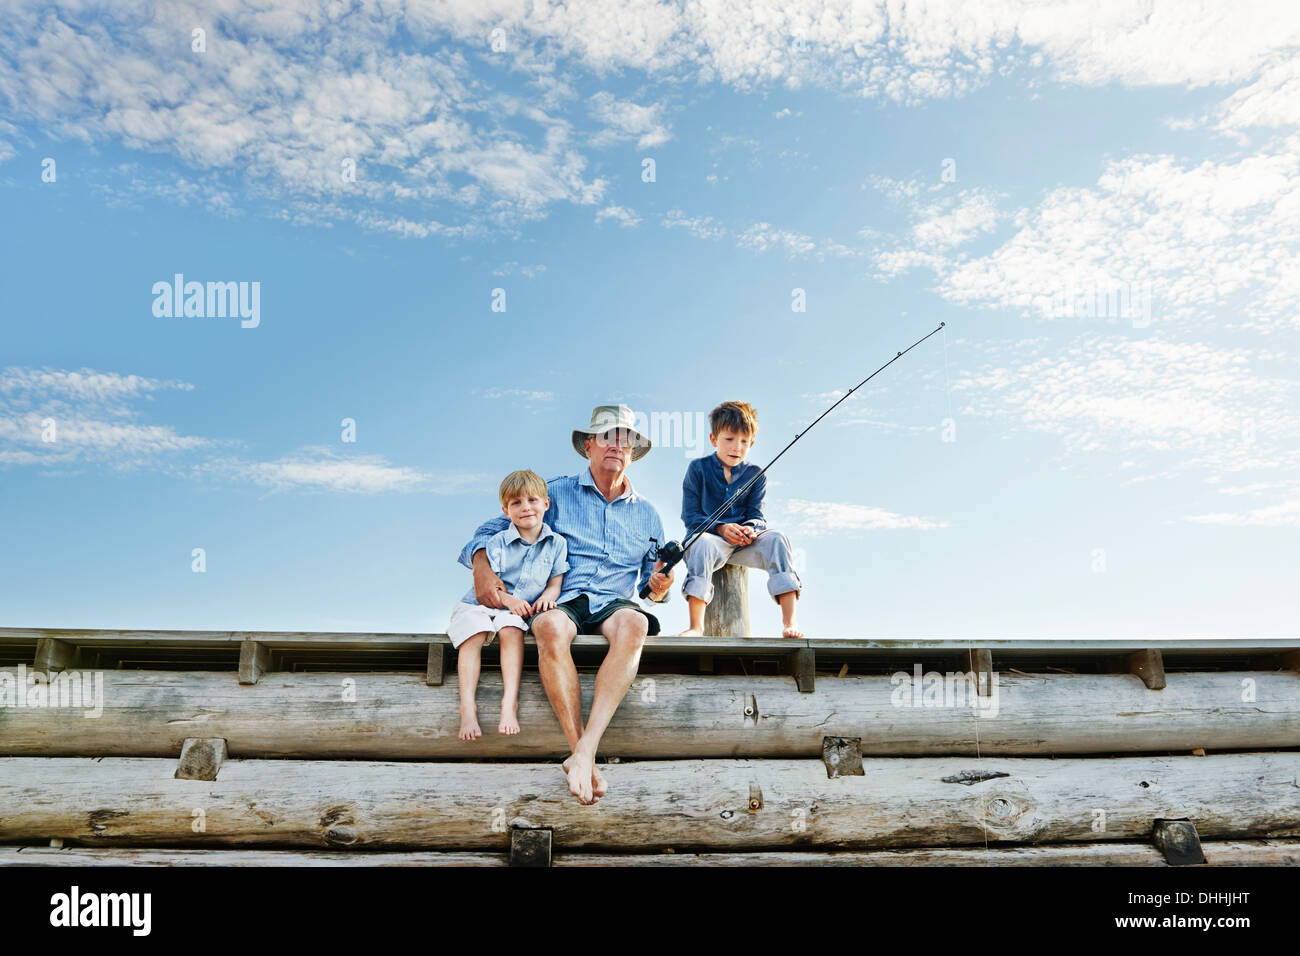 Boys with grandfather fishing, Utvalnas, Sweden - Stock Image